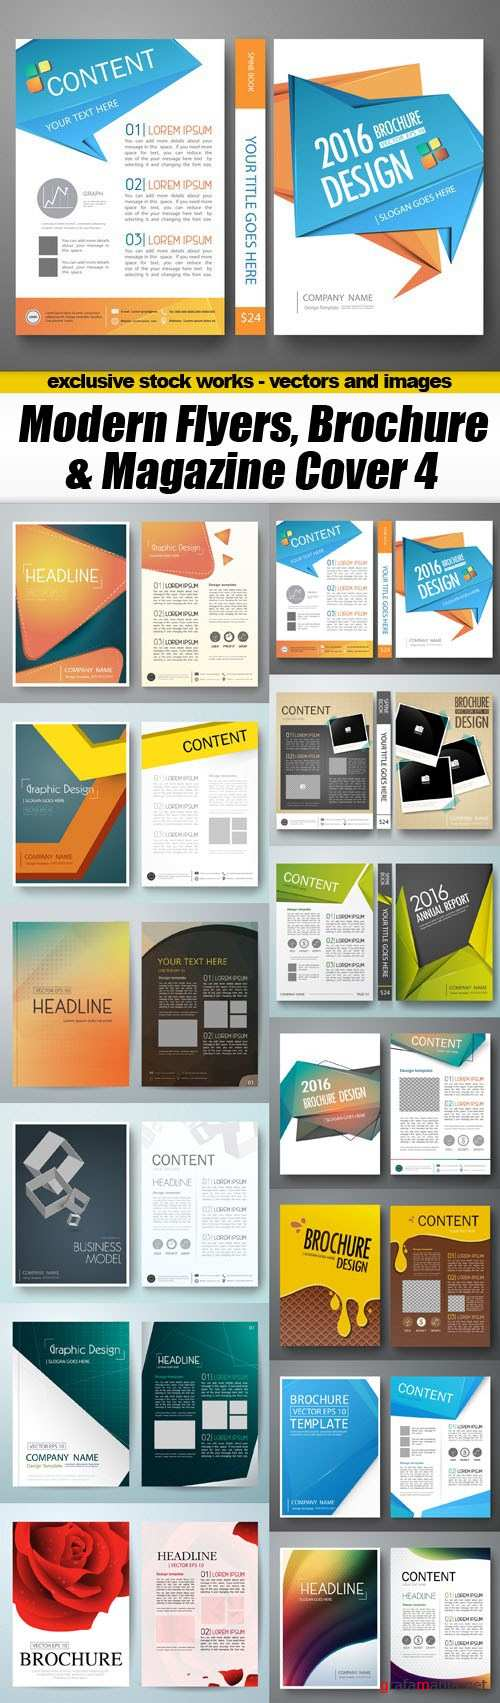 Modern Flyers, Brochure & Magazine Cover 4 - 13xEPS